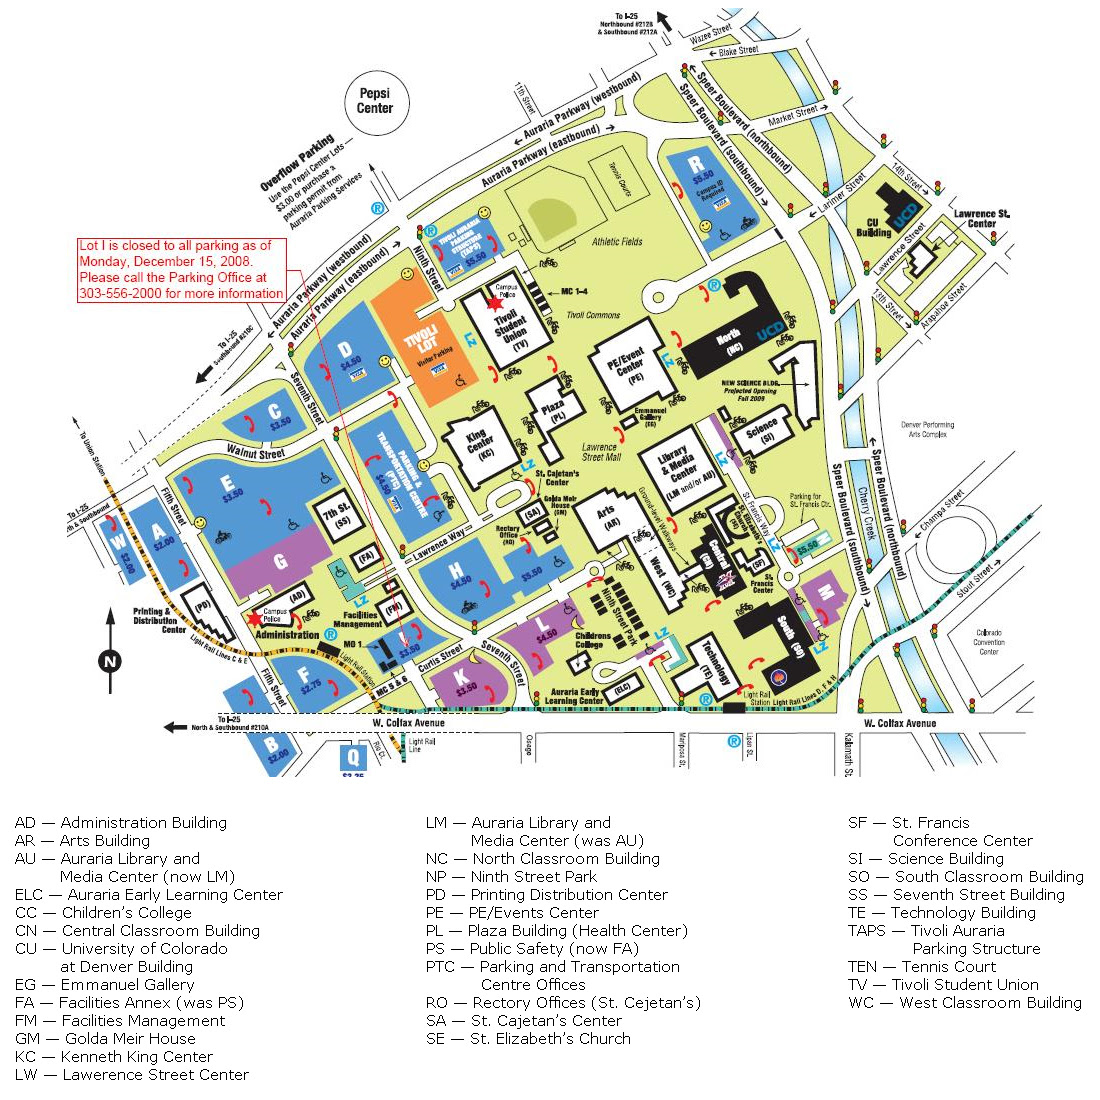 Southwestern Michigan College Campus Map | Time Zones Map on husson college campus map, lesley college campus map, central maine community college campus map, medical university of south carolina campus map, bastyr university campus map, knoxville college campus map, indiana university east campus map, olivet college campus map, salem state college campus map, granite state college campus map, massachusetts college of liberal arts campus map, white house campus map, albany state college campus map, exeter hospital campus map, nashua community college campus map, plymouth state college campus map, hesston college campus map, macdowell colony campus map, southern nh university campus map,